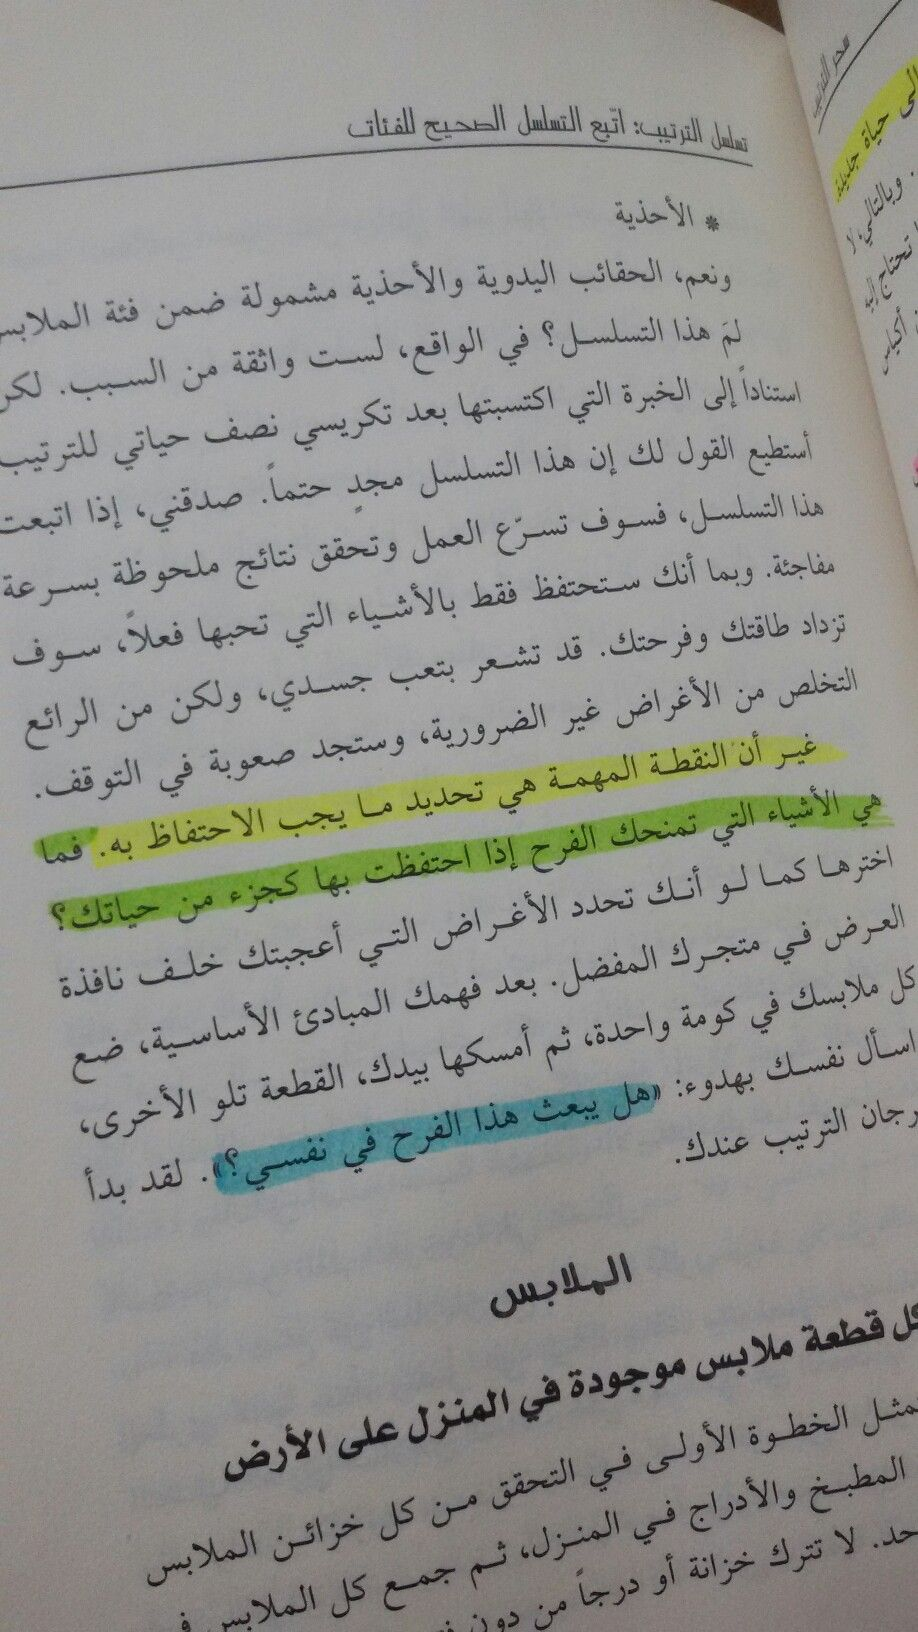 سحر الترتيب Favorite Book Quotes Book Quotes Paper Architecture